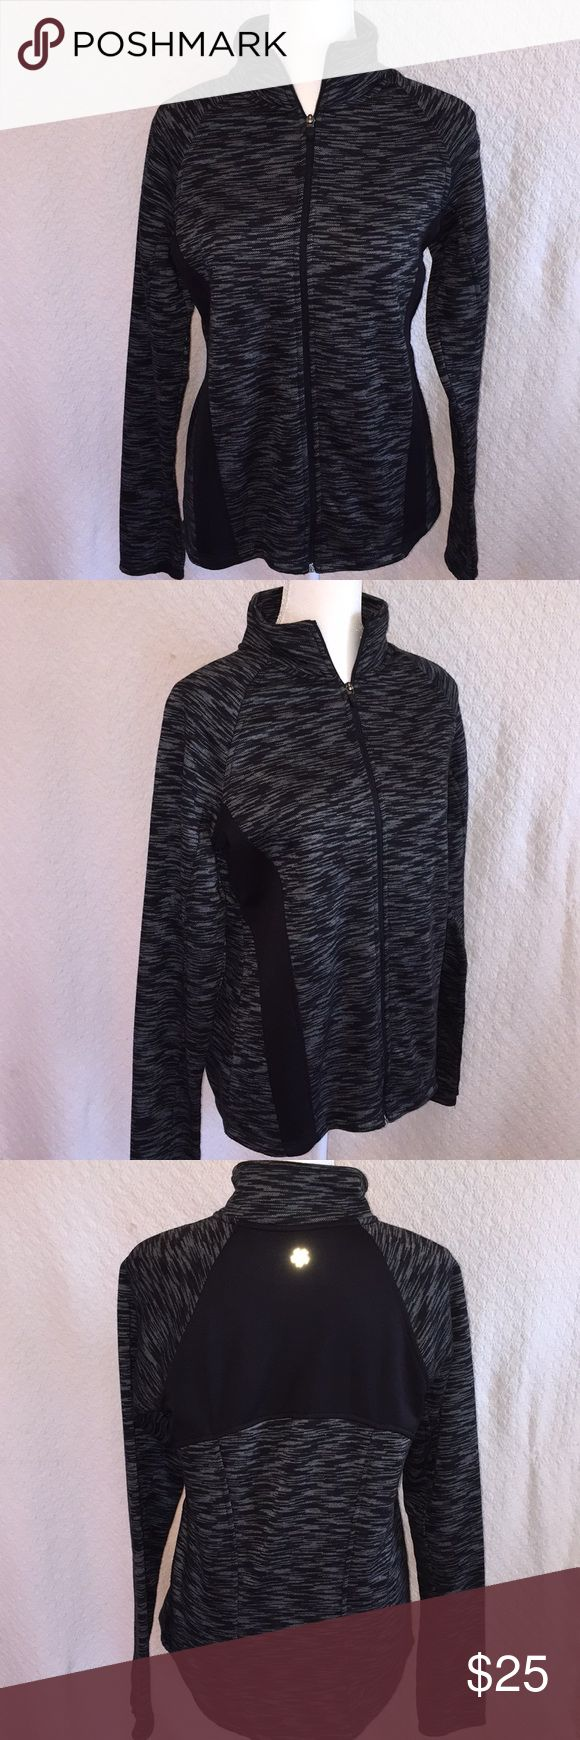 Must see! Tek Gear black jacket. NWOT Must see! Tek Gear bright coral jacket. New without tags. The fabric pattern is gorgeous. The shape is flattering. Nice longer length. I adore this jacket but never had the chance to wear it as I didn't lose the weight I'd hoped to. Now is your chance to own it at a great price. Also selling the same jacket in bright coral. tek gear Jackets & Coats